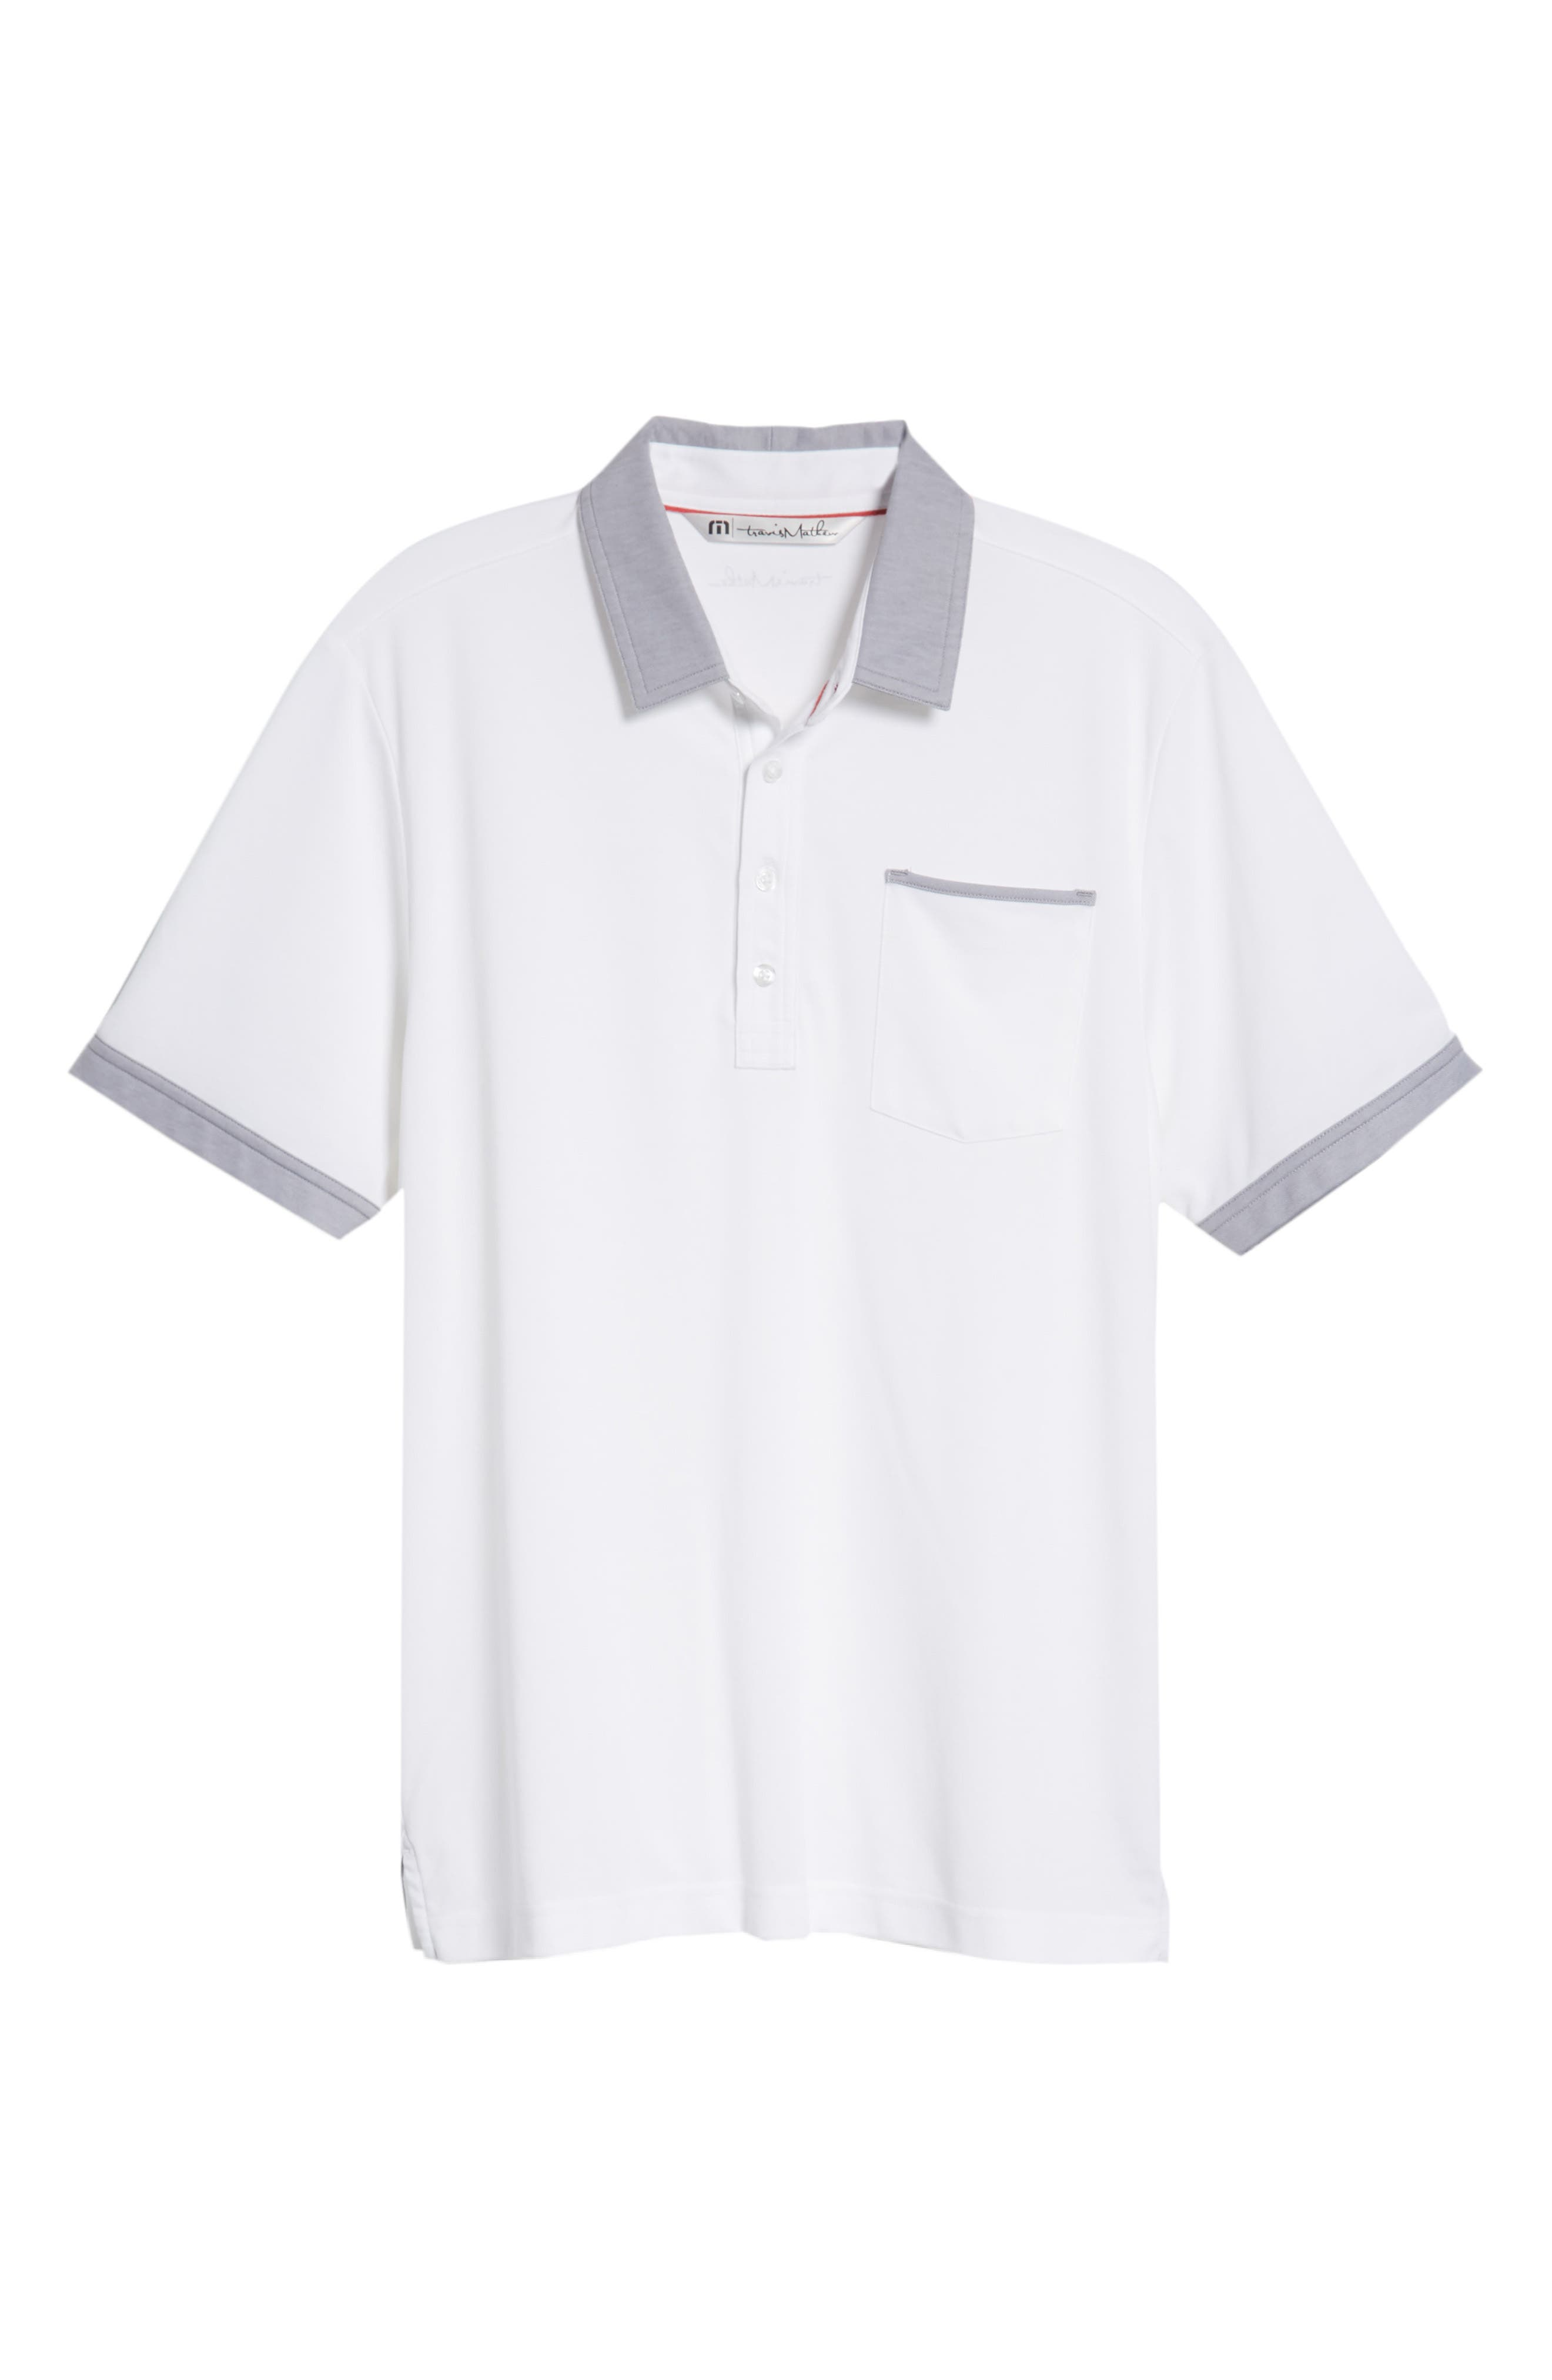 K-Lew Piqué Polo,                             Alternate thumbnail 6, color,                             White